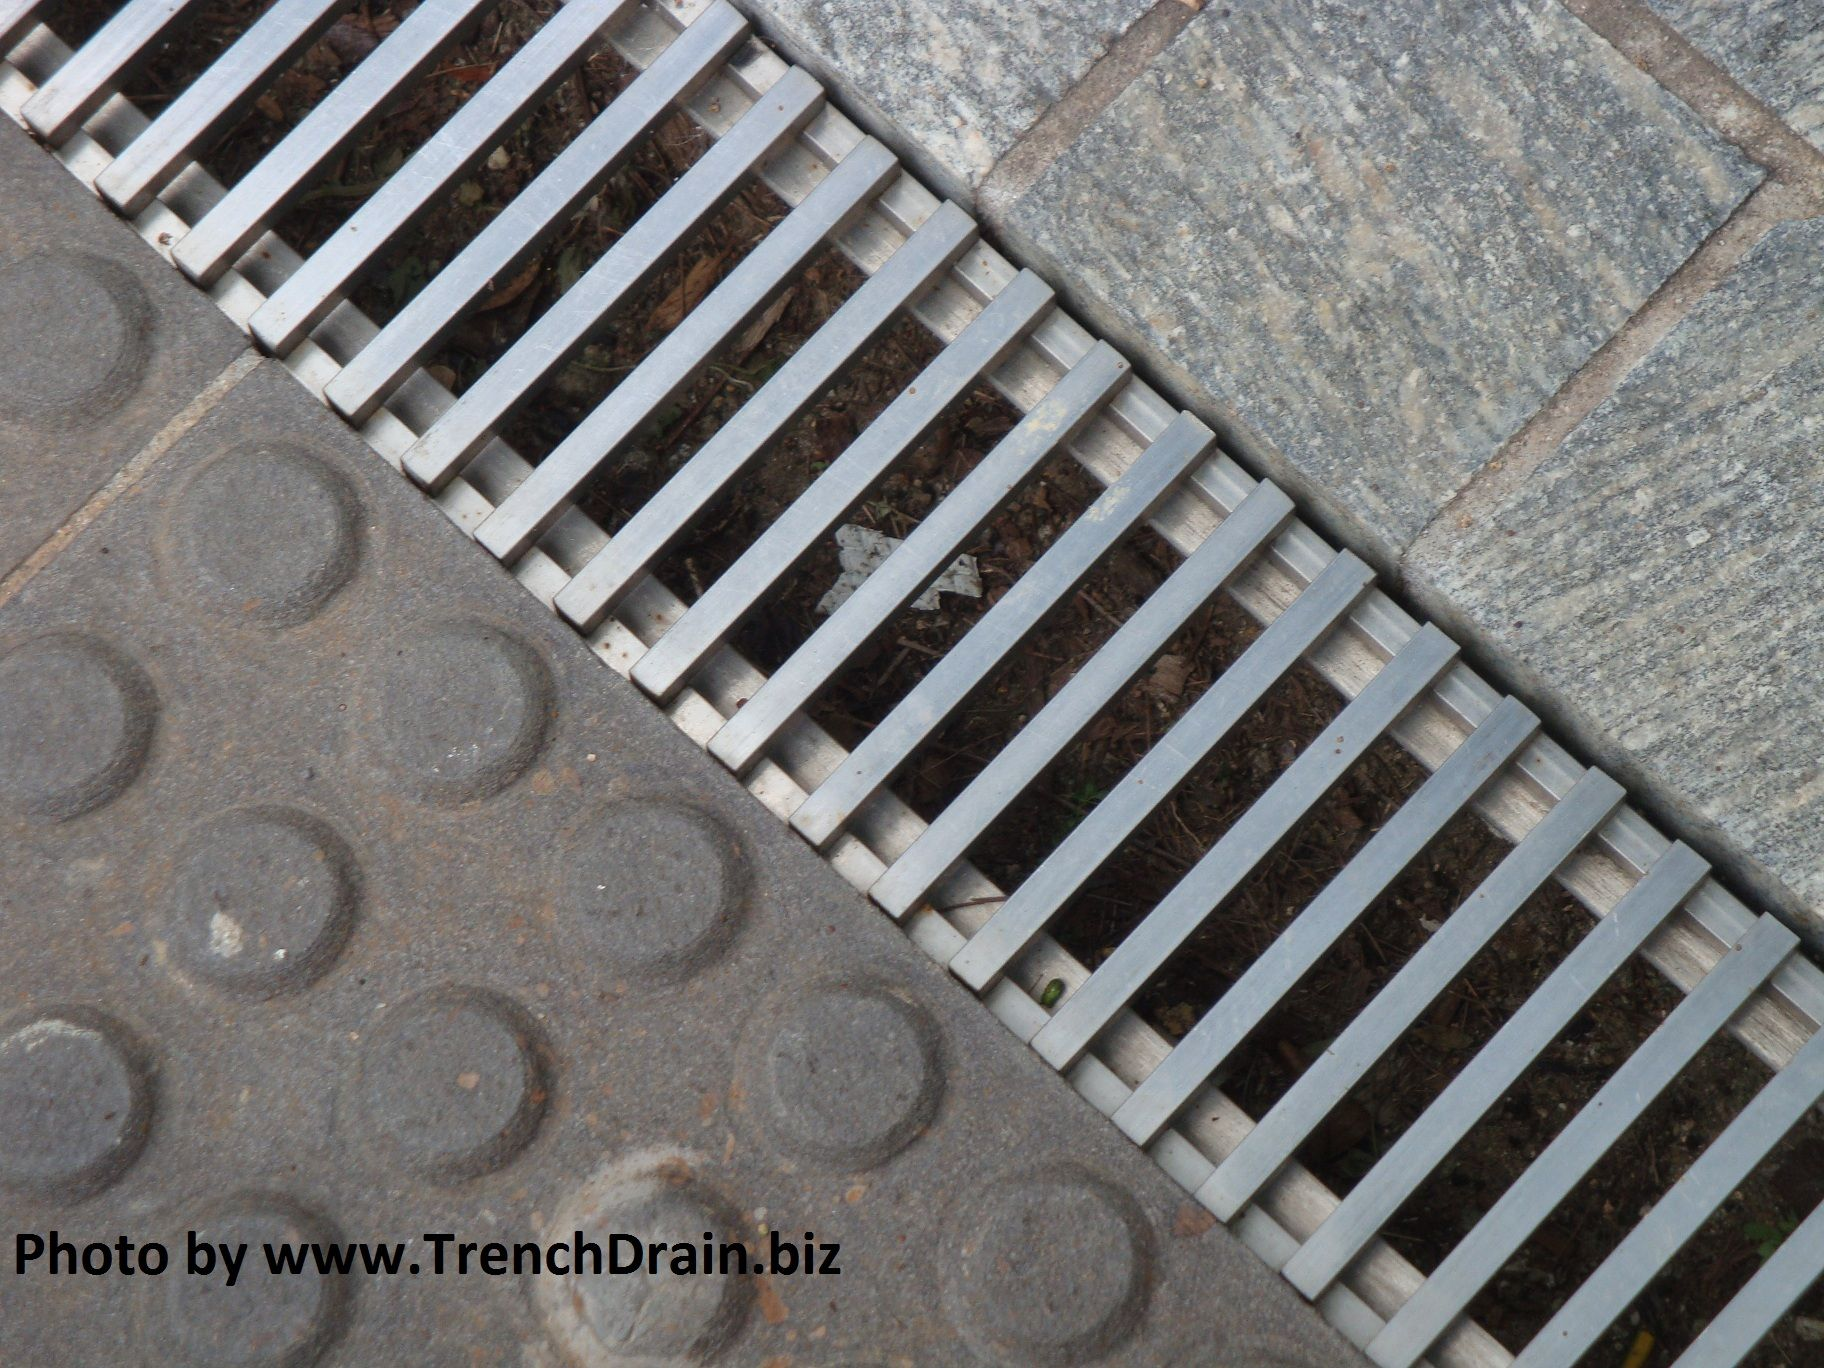 Concrete Drain Grate Google Search Trench Drain